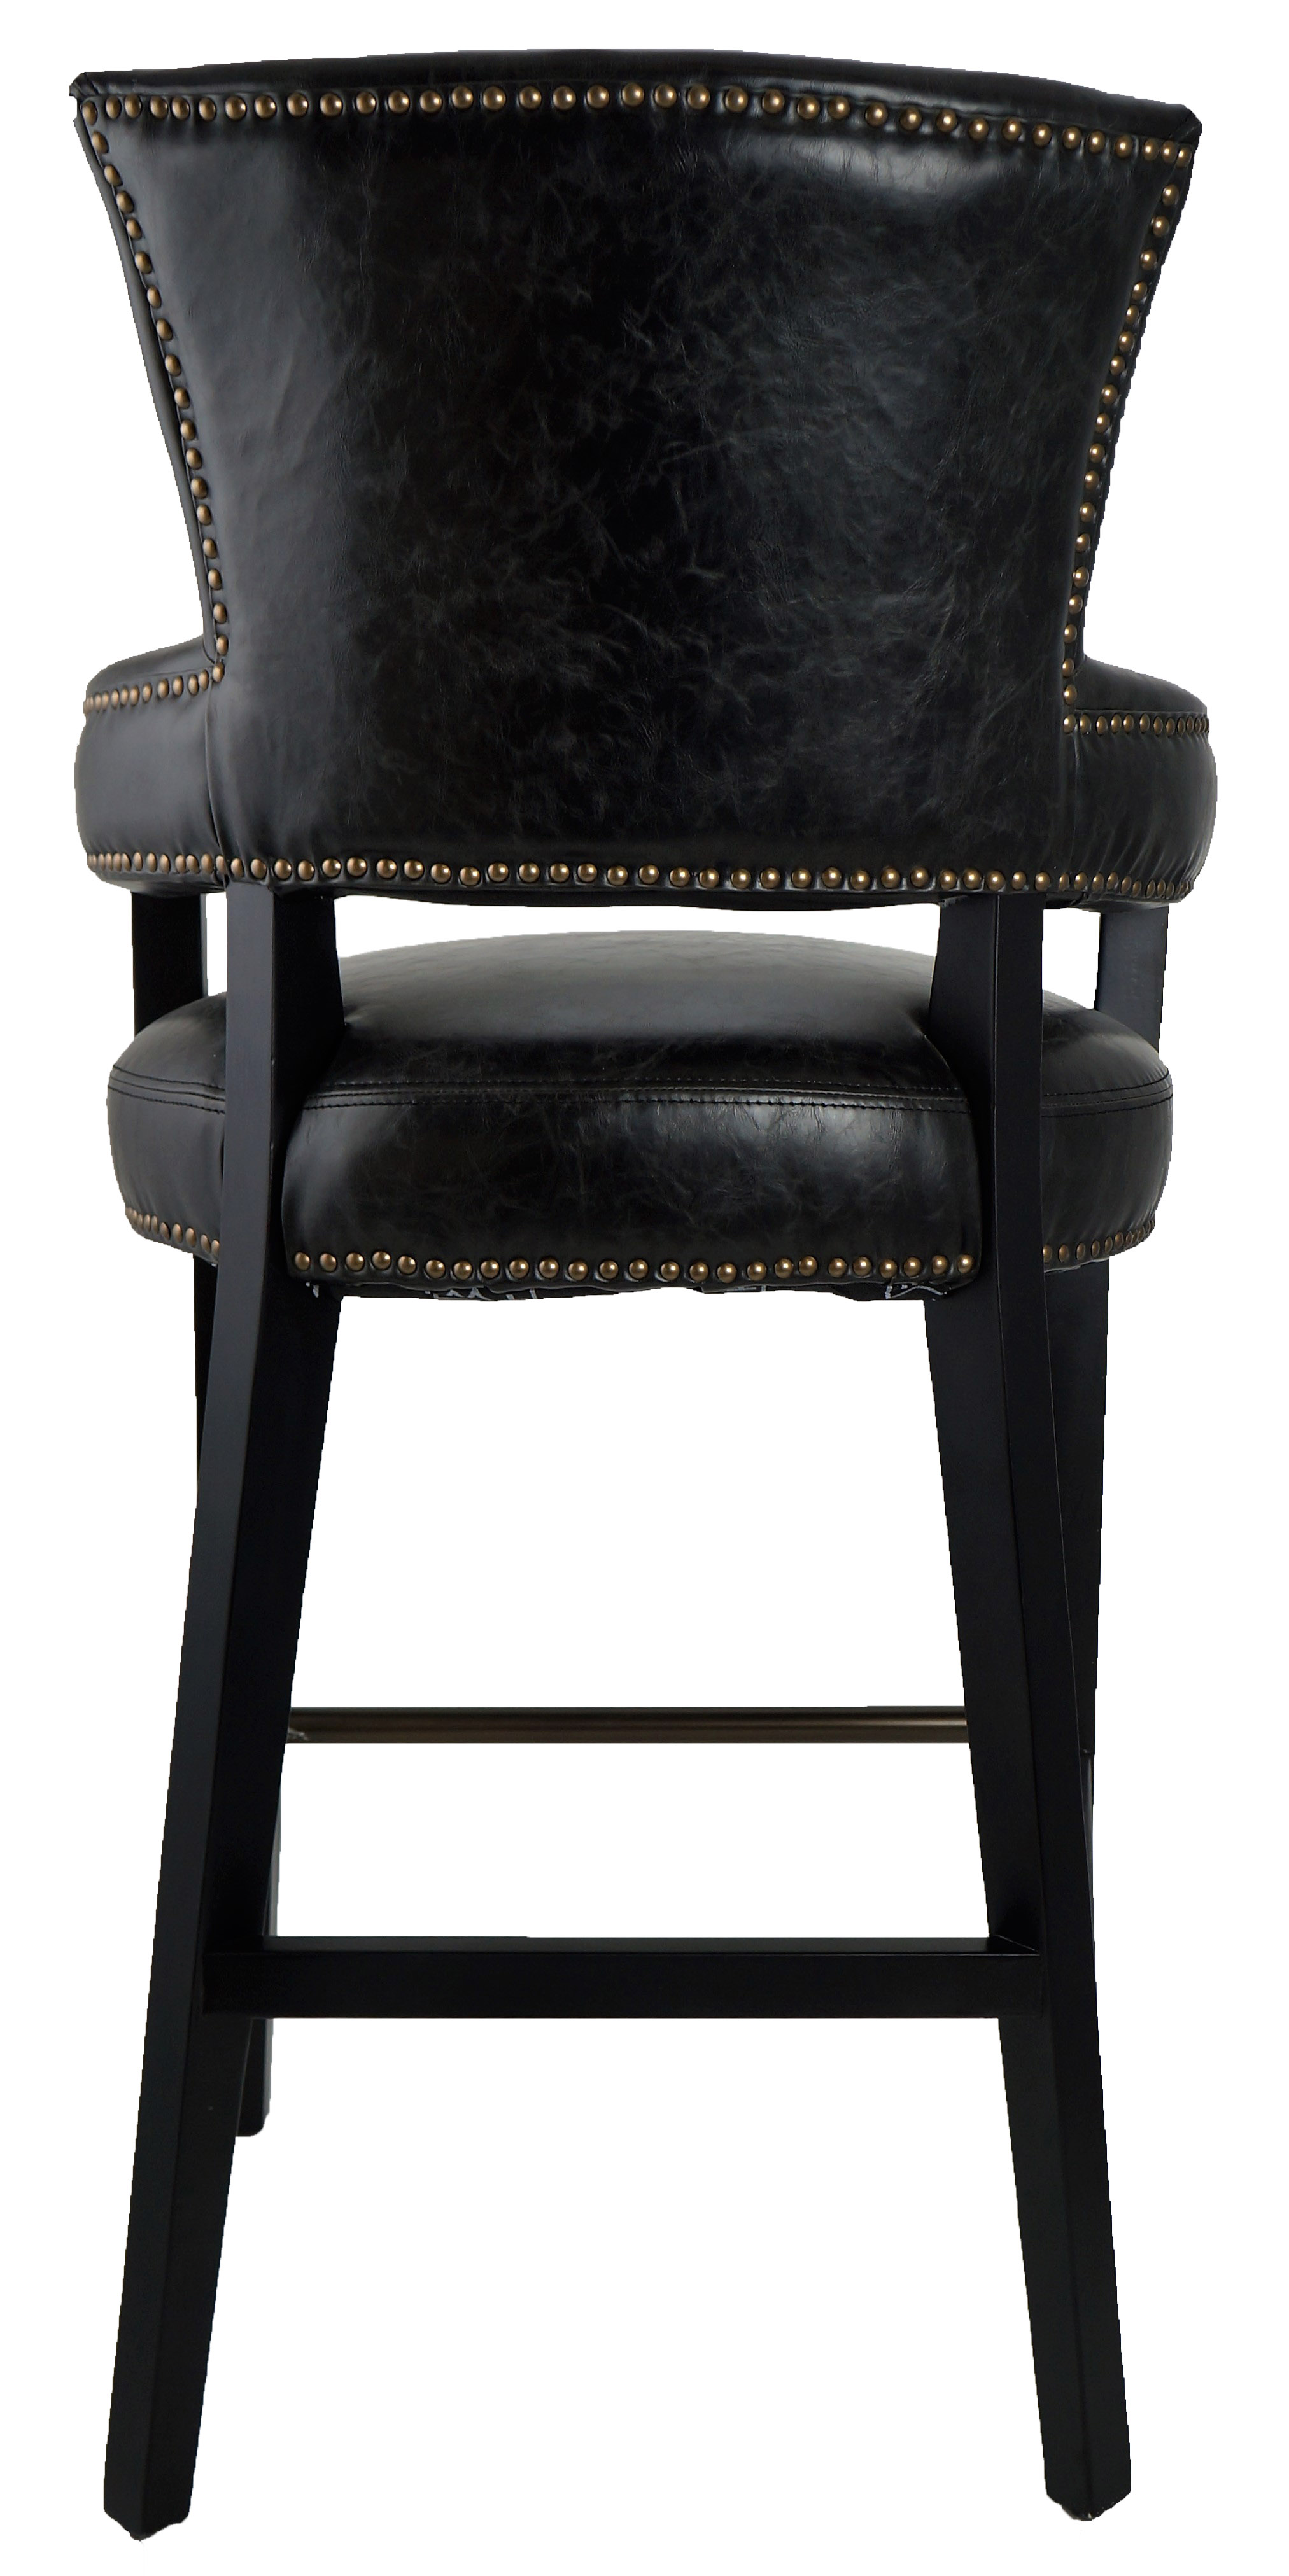 Bar Stools Amp Kitchen Counter Stools Black Majestic Arm Bar Stool Only 1 Left Final Floor Model Artefac Usa